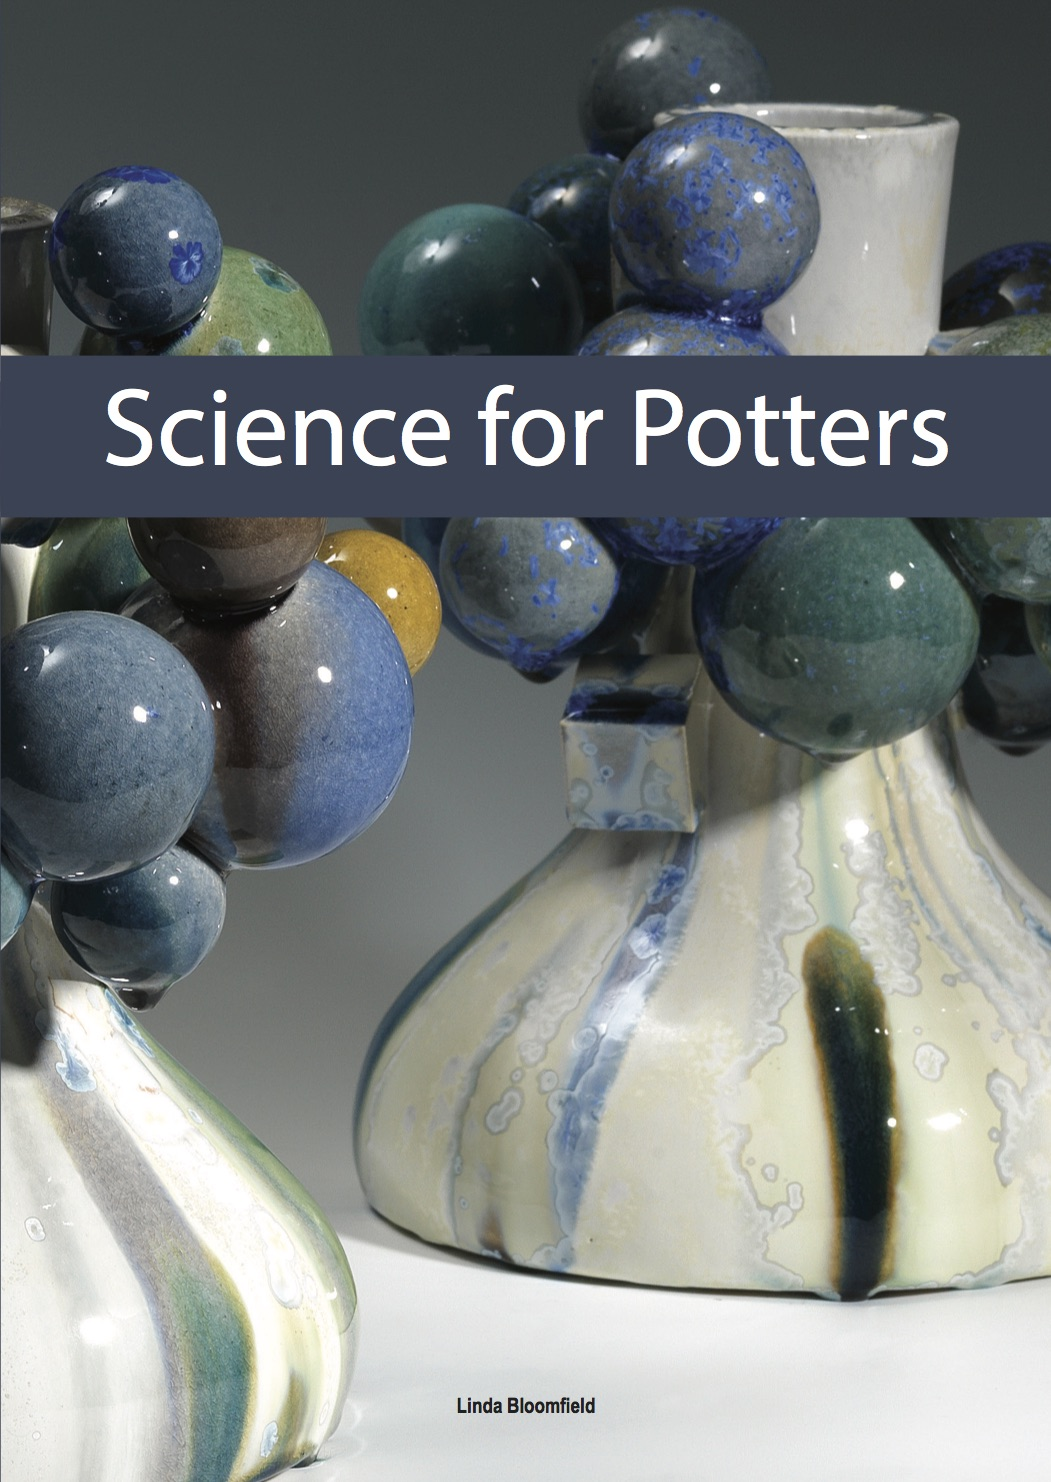 science, potters, geology, chemistry, glazes, clay